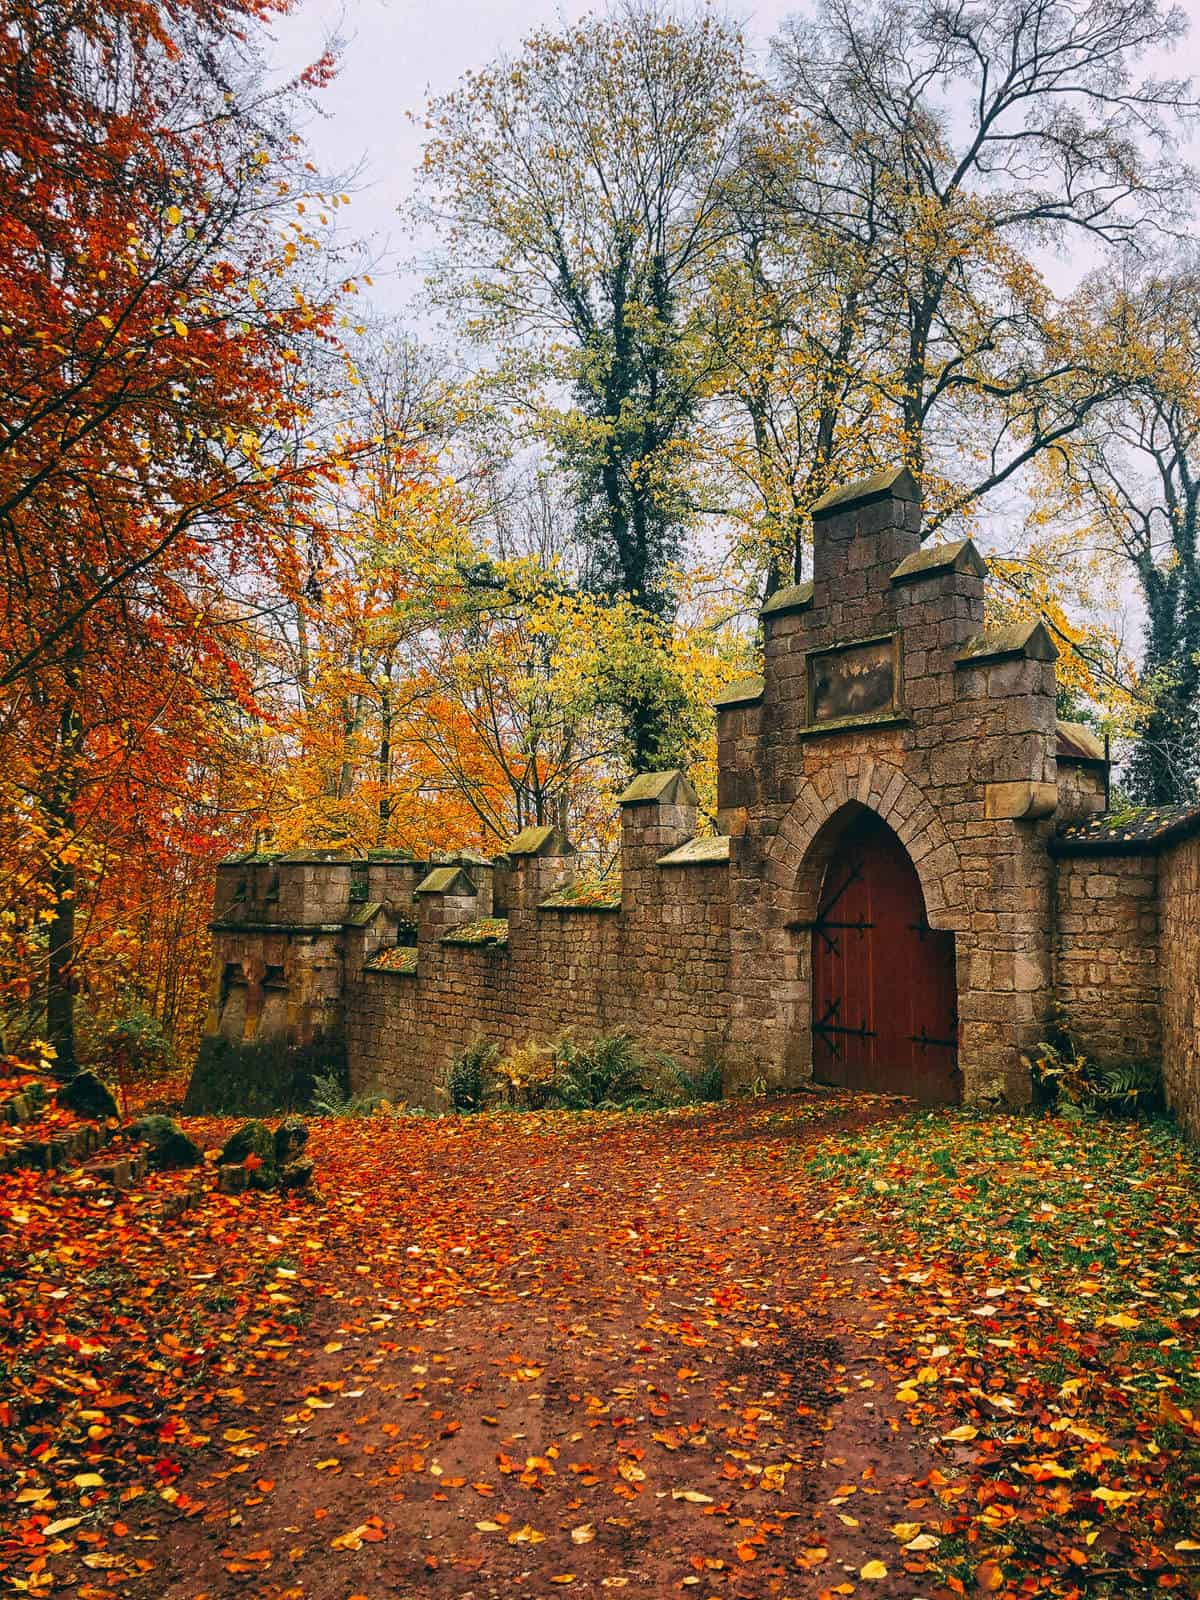 A gate on the side of an old castle surrounded by autumn leaves